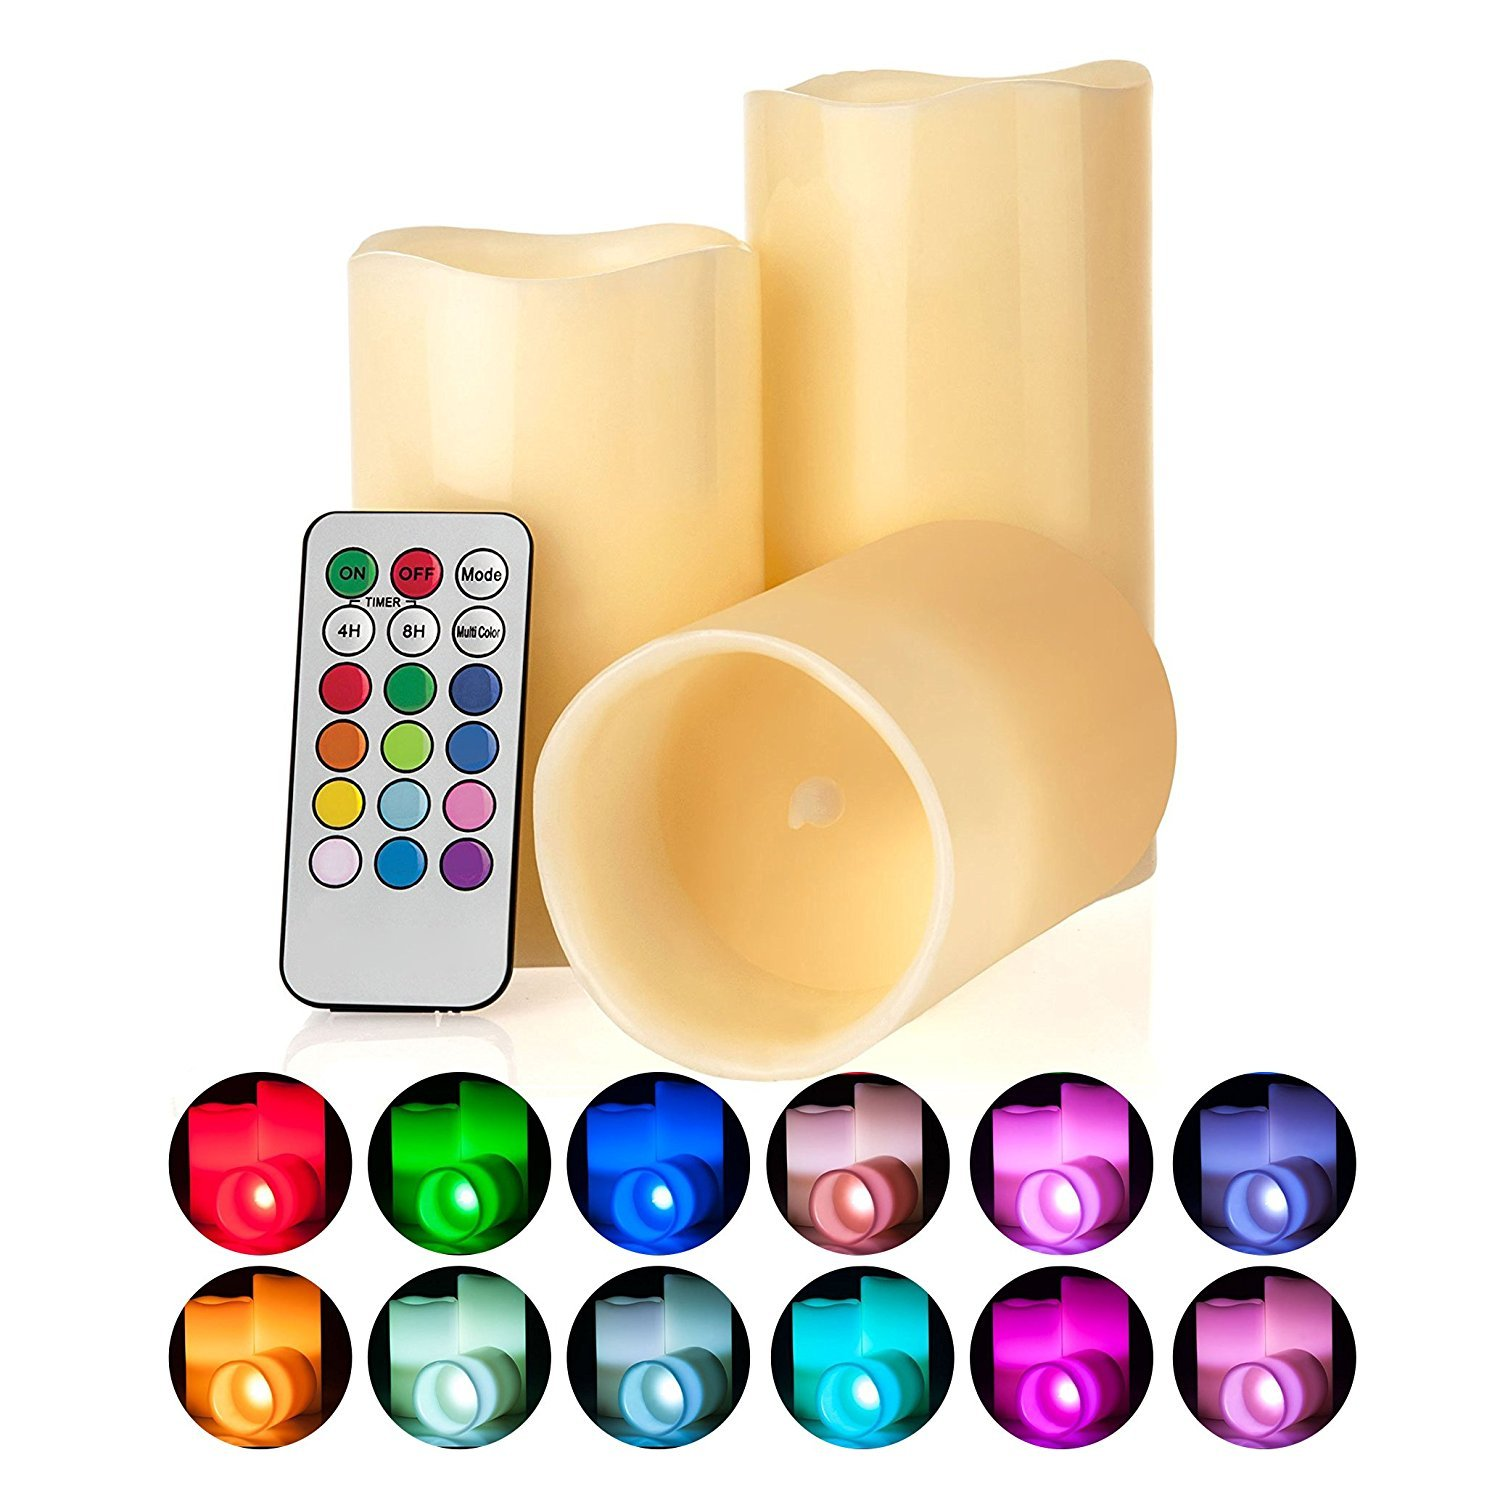 LED Lytes Flickering Flameless Candles - Battery Operated Candles Vanilla Scented Set of 3 Round Ivory Wax Flickering Multi Colored Flame, auto-Off Timer Remote Control Weddings Gifts by LED Lytes (Image #8)